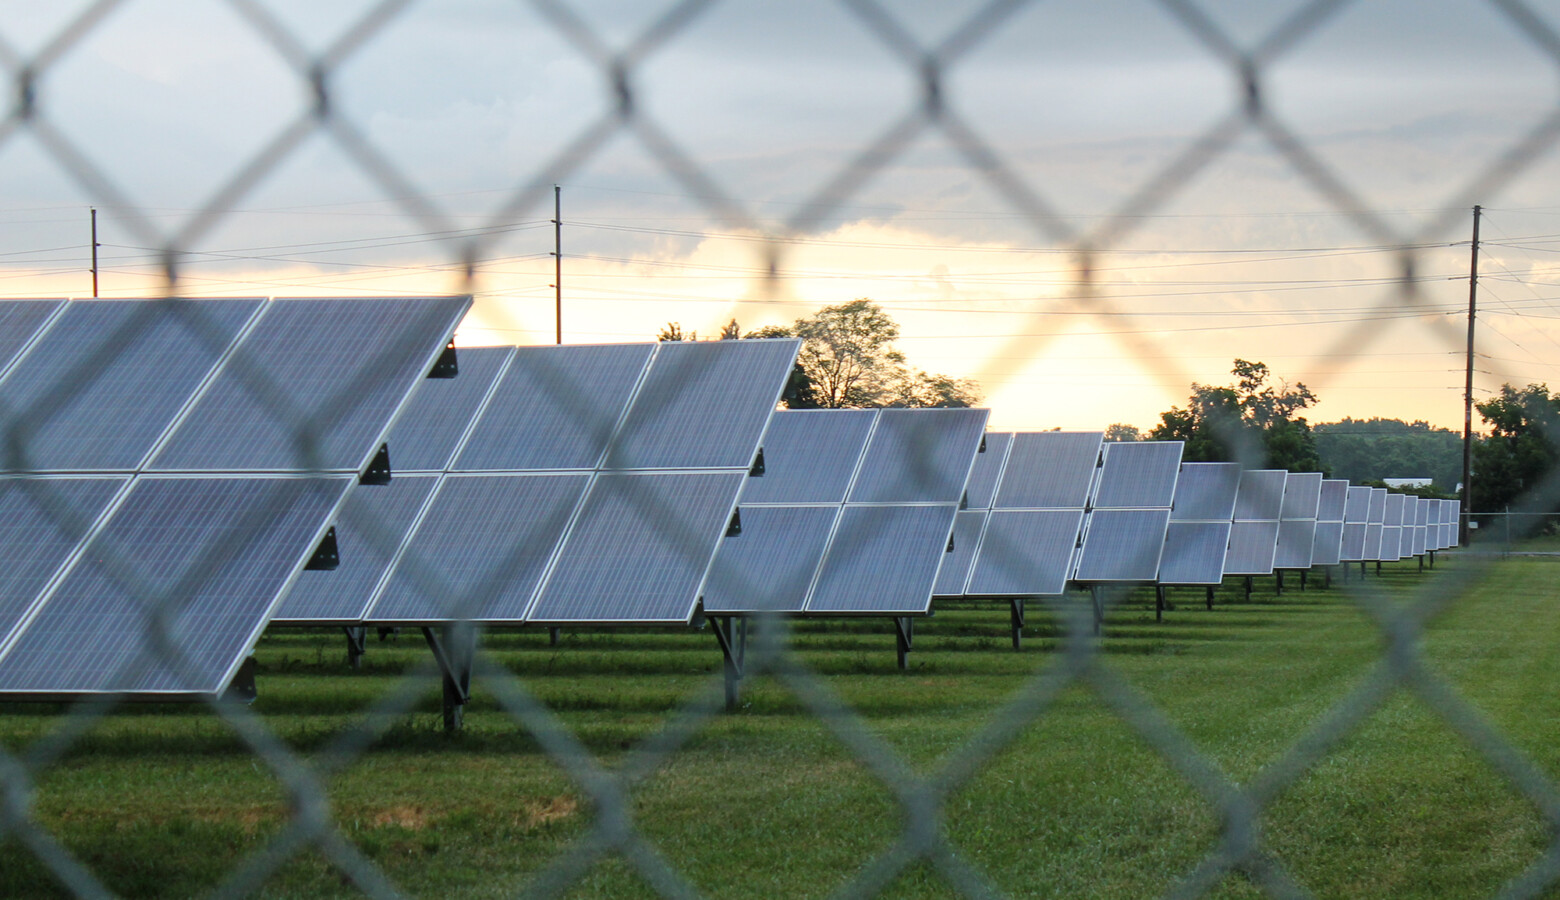 Indiana is expected to see the third highest increase in megawatts of large-scale solar in the country — with nearly four gigawatts, or 4,000 megawatts, proposed. (Lauren Chapman/IPB News)